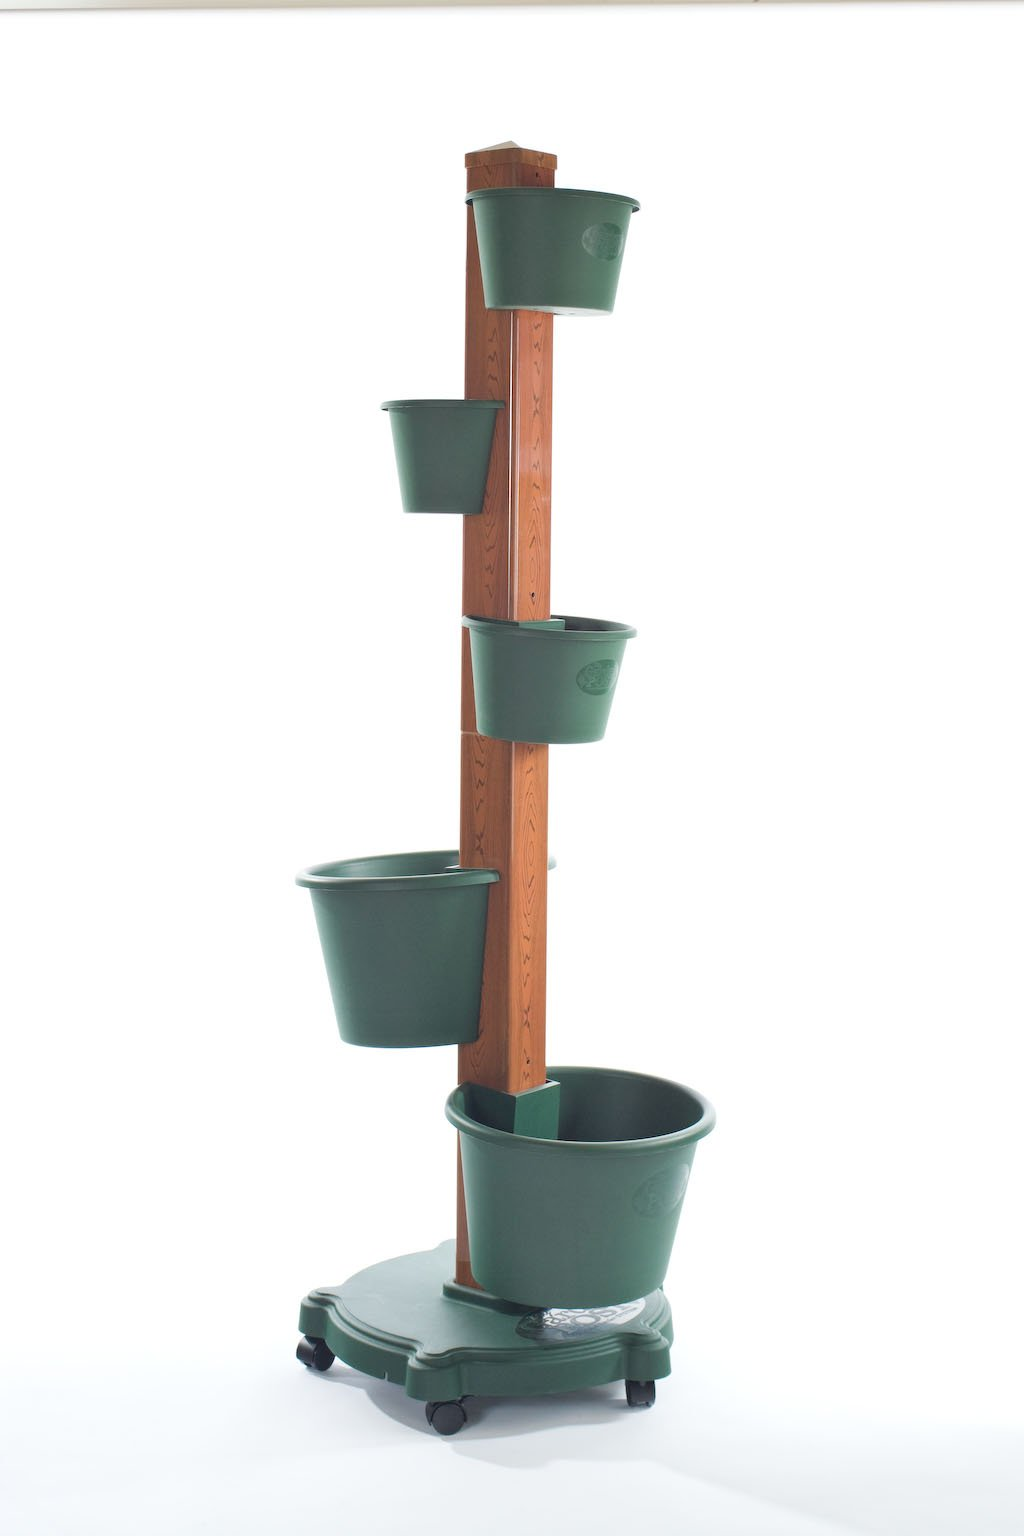 My Garden Post 5 Planter Vertical Gardening System with Drip Irrigation System Finish, Hunter Green by My Garden Post